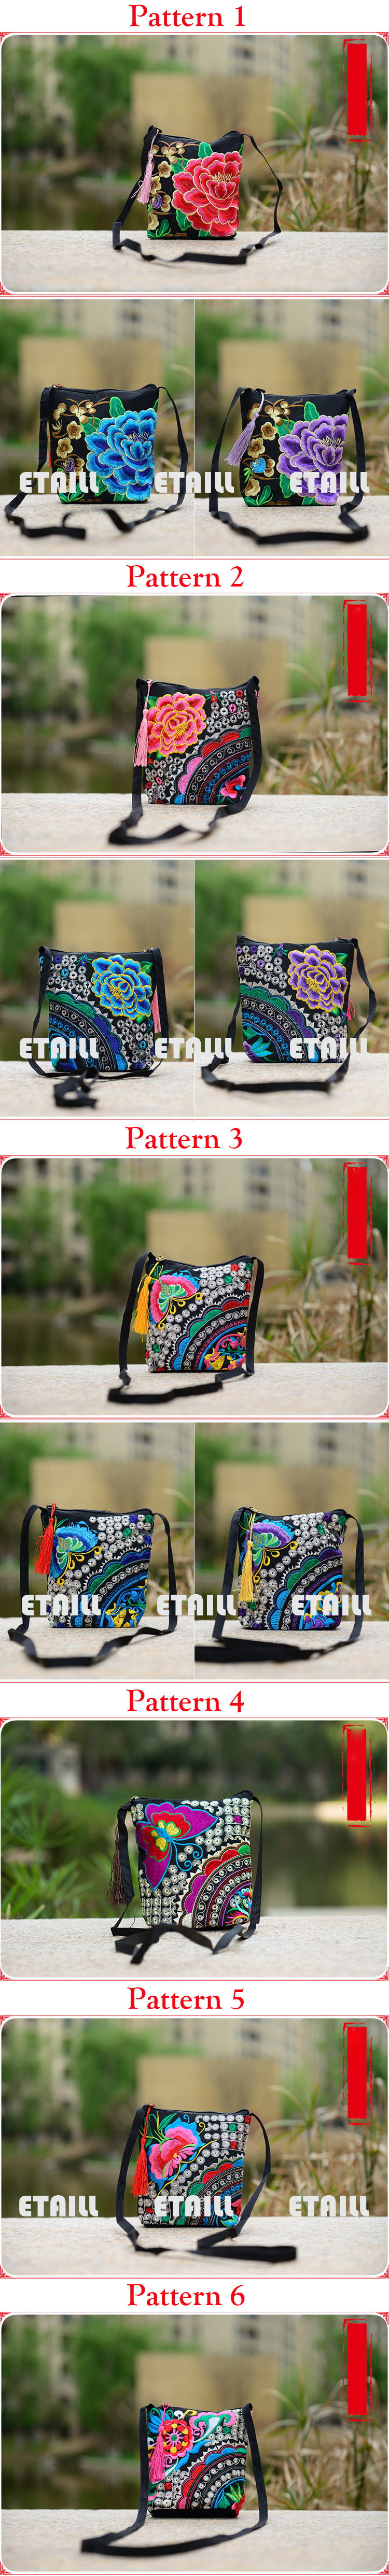 bag fashion ladies embroidery